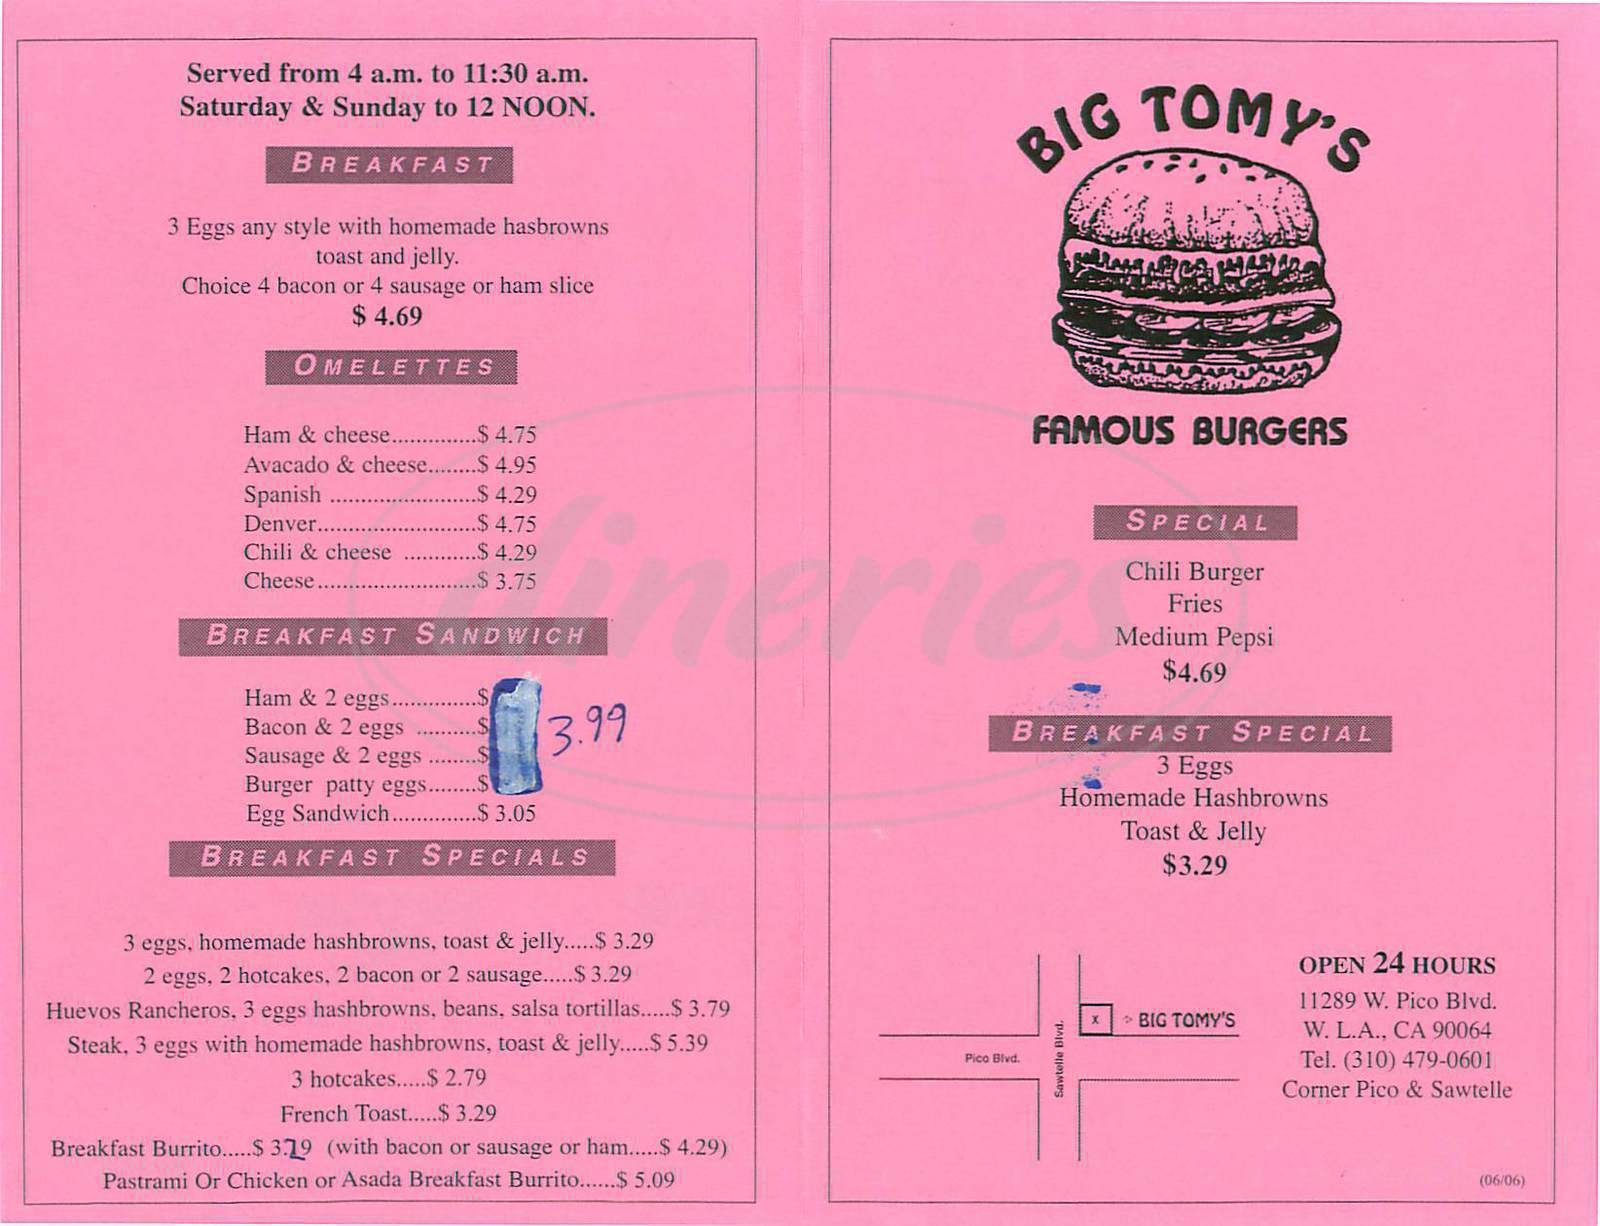 menu for Big Tomys